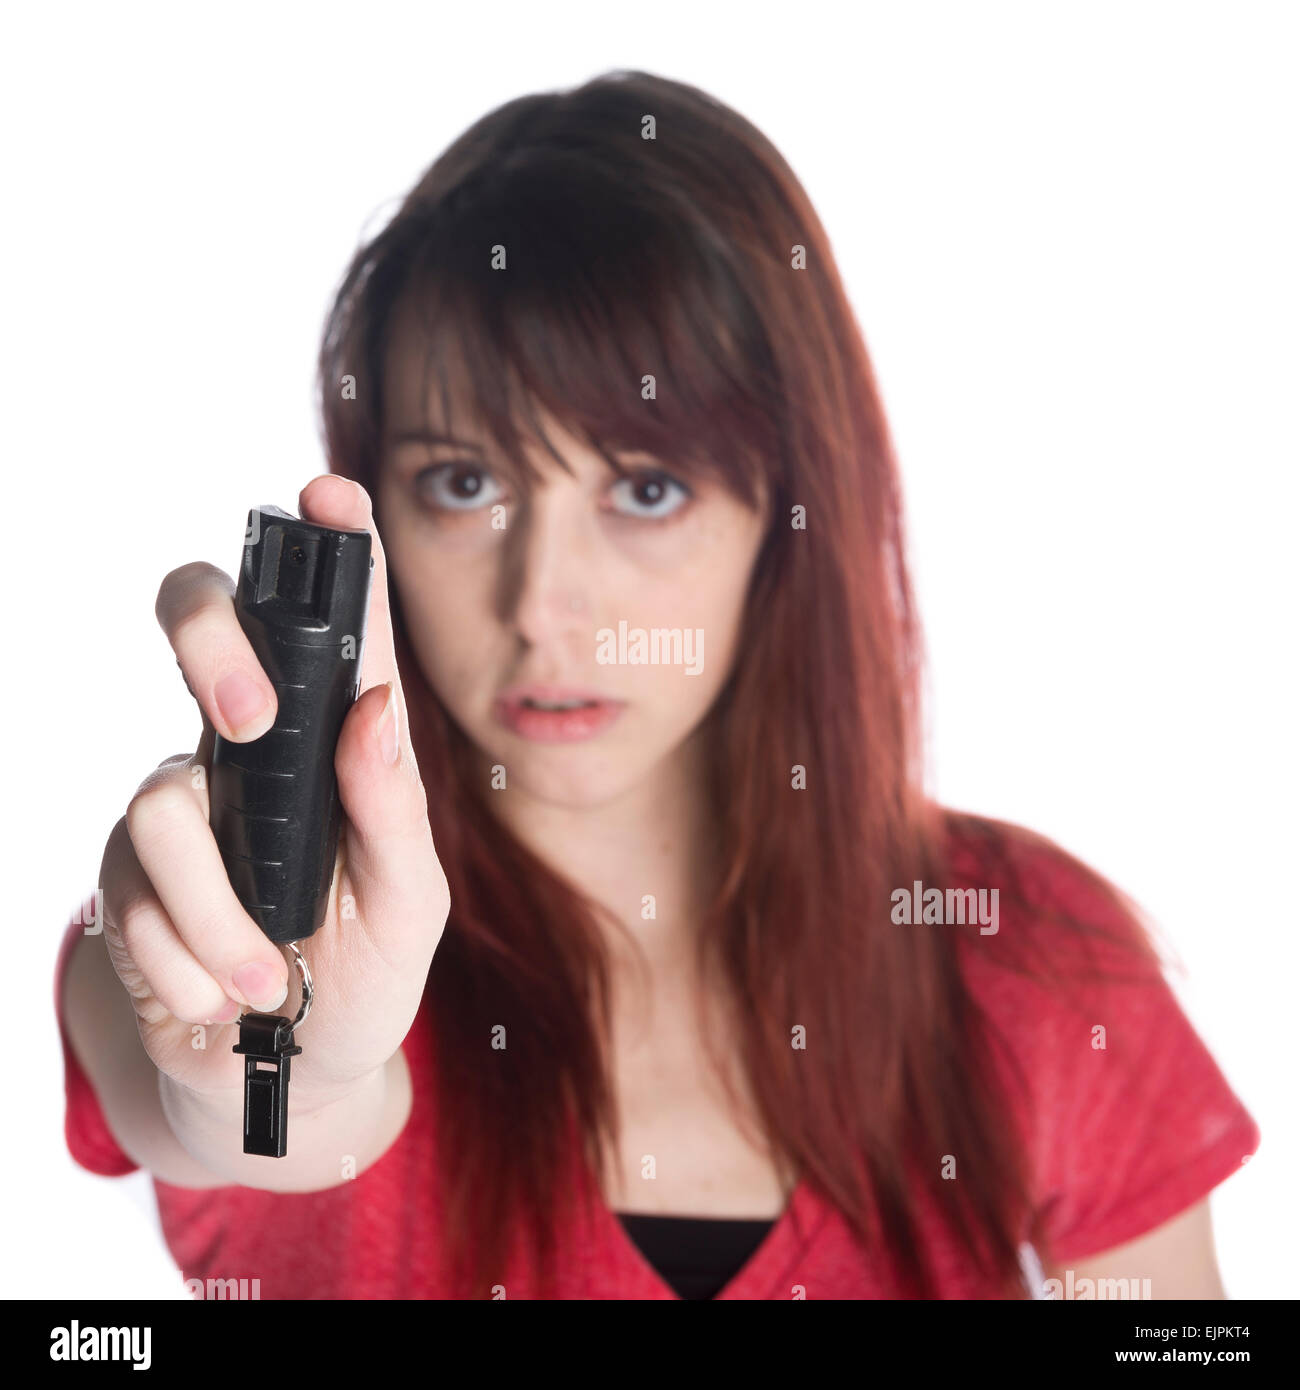 Serious Young Woman Holding Black Tear Gas Spray - Stock Image